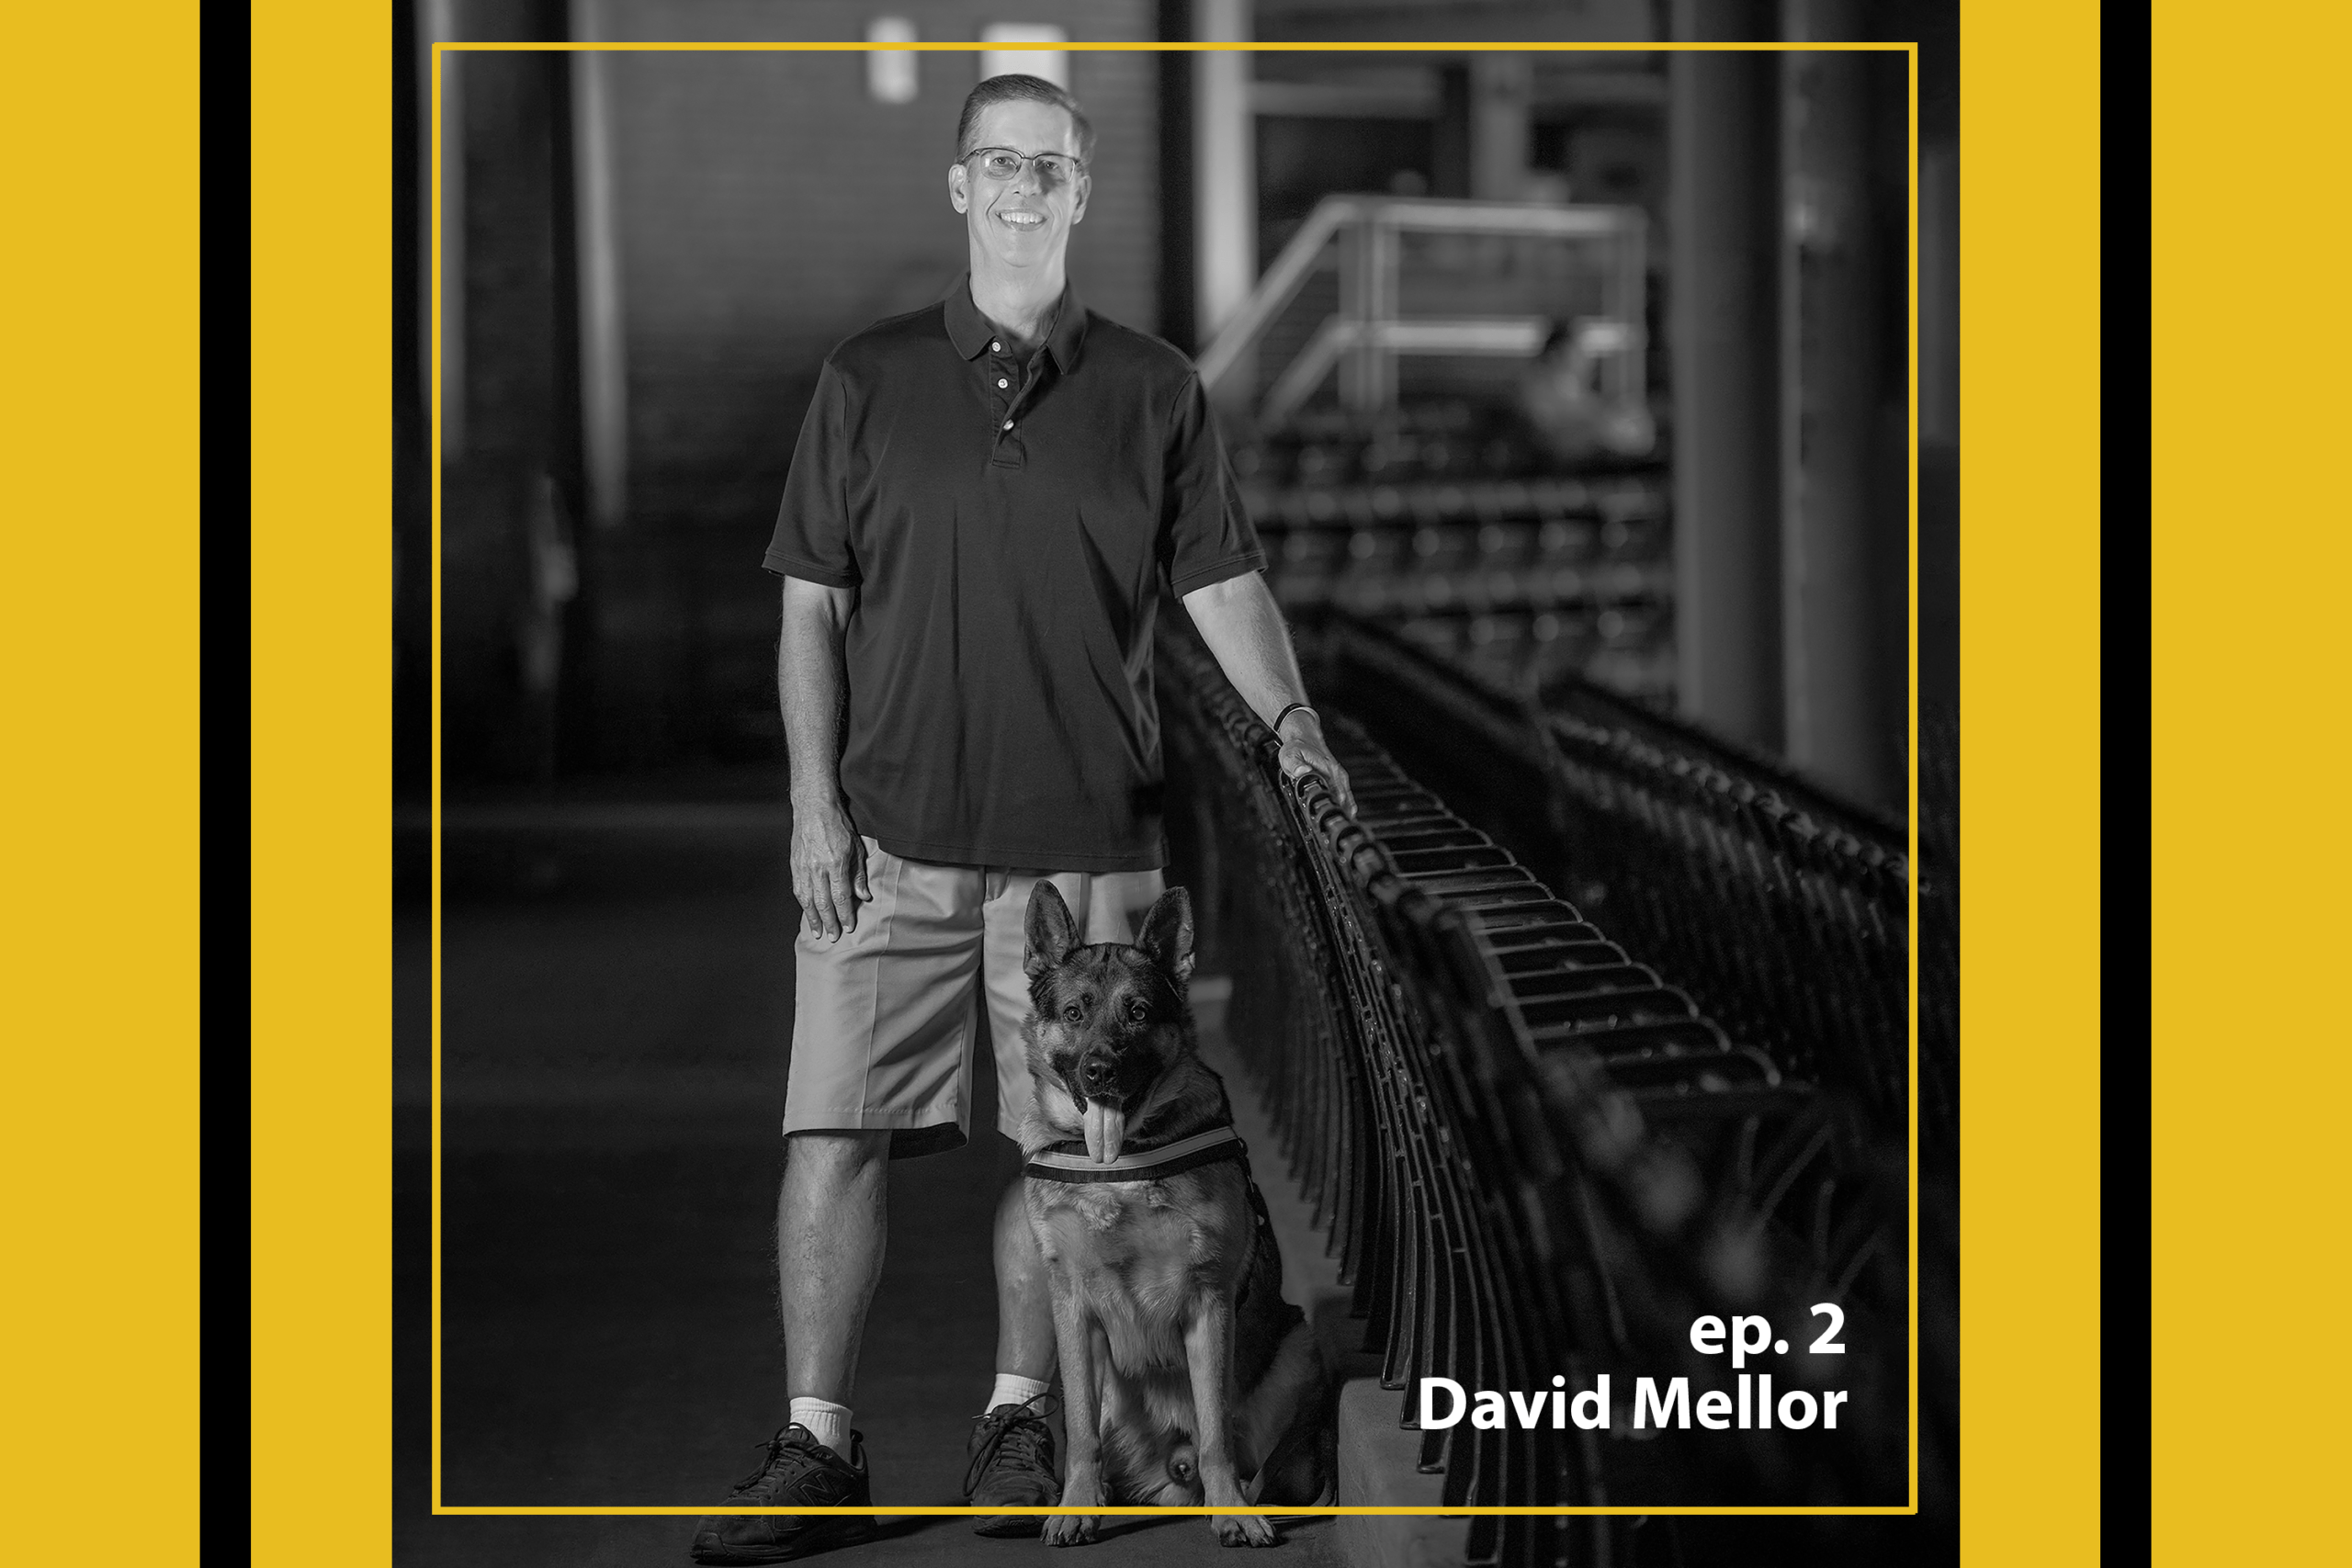 David Mellor - Back From Broken Episode 2